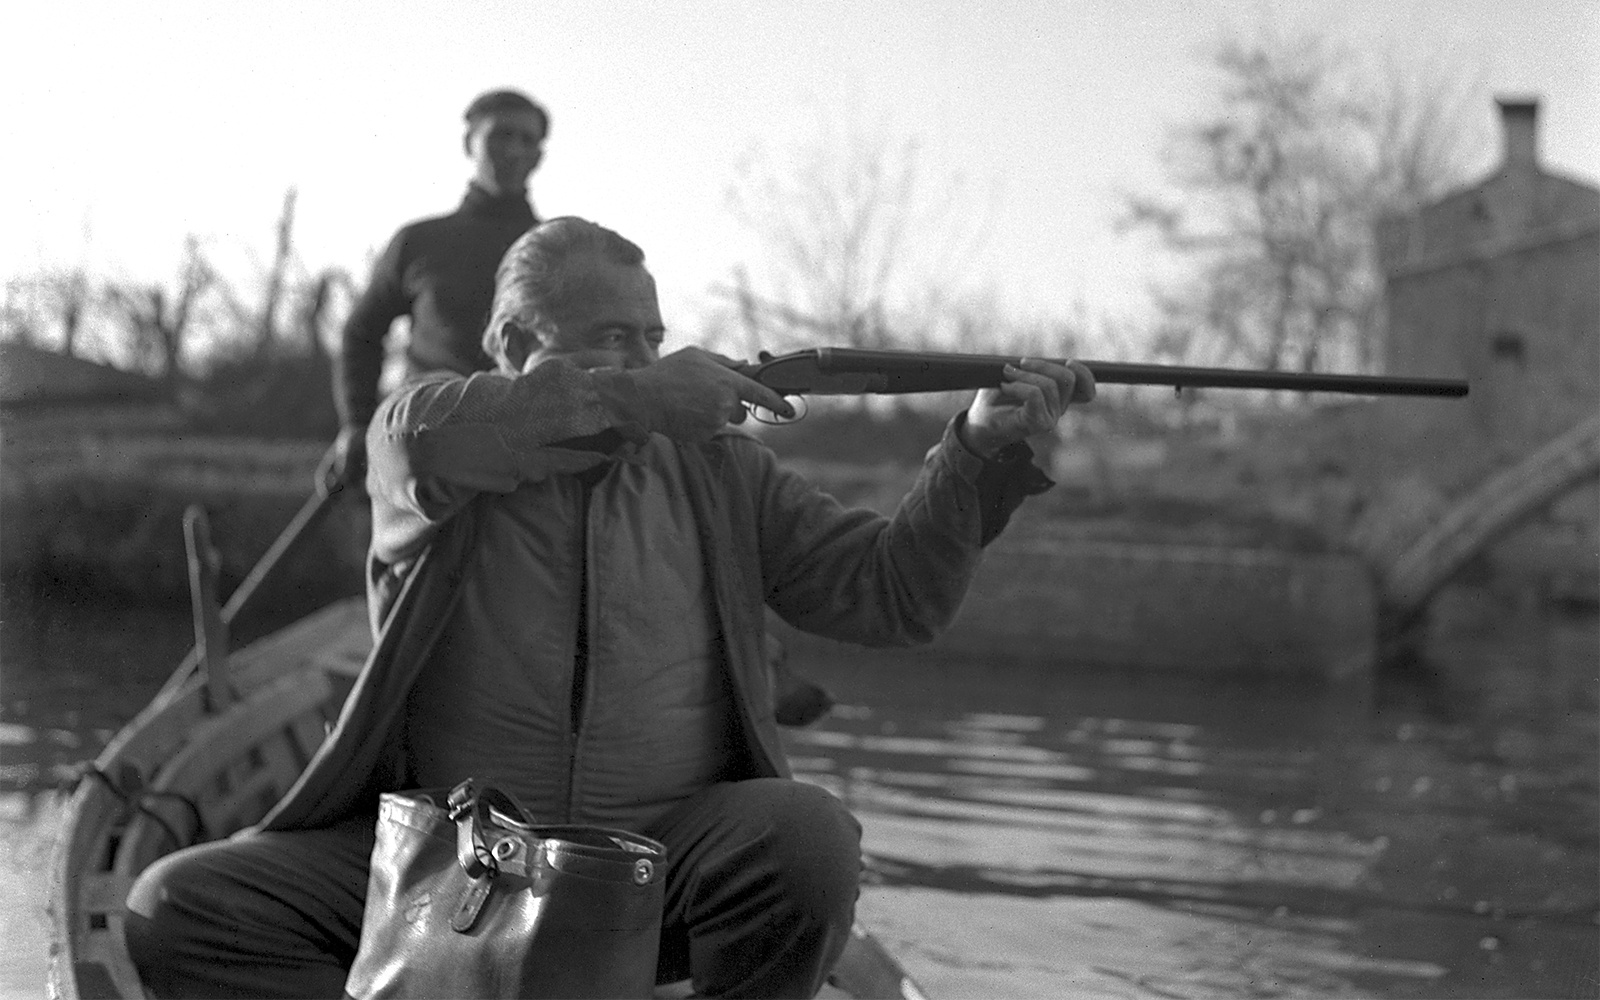 American writer Ernest Hemingway, sitting on a boat, taking aim while hunting ducks in a pond, on Torcello island, Venice, 1948. Hemingway is using a shotgun by James Purdey & Sons. (Photo by Archivio Cameraphoto Epoche/Getty Images)